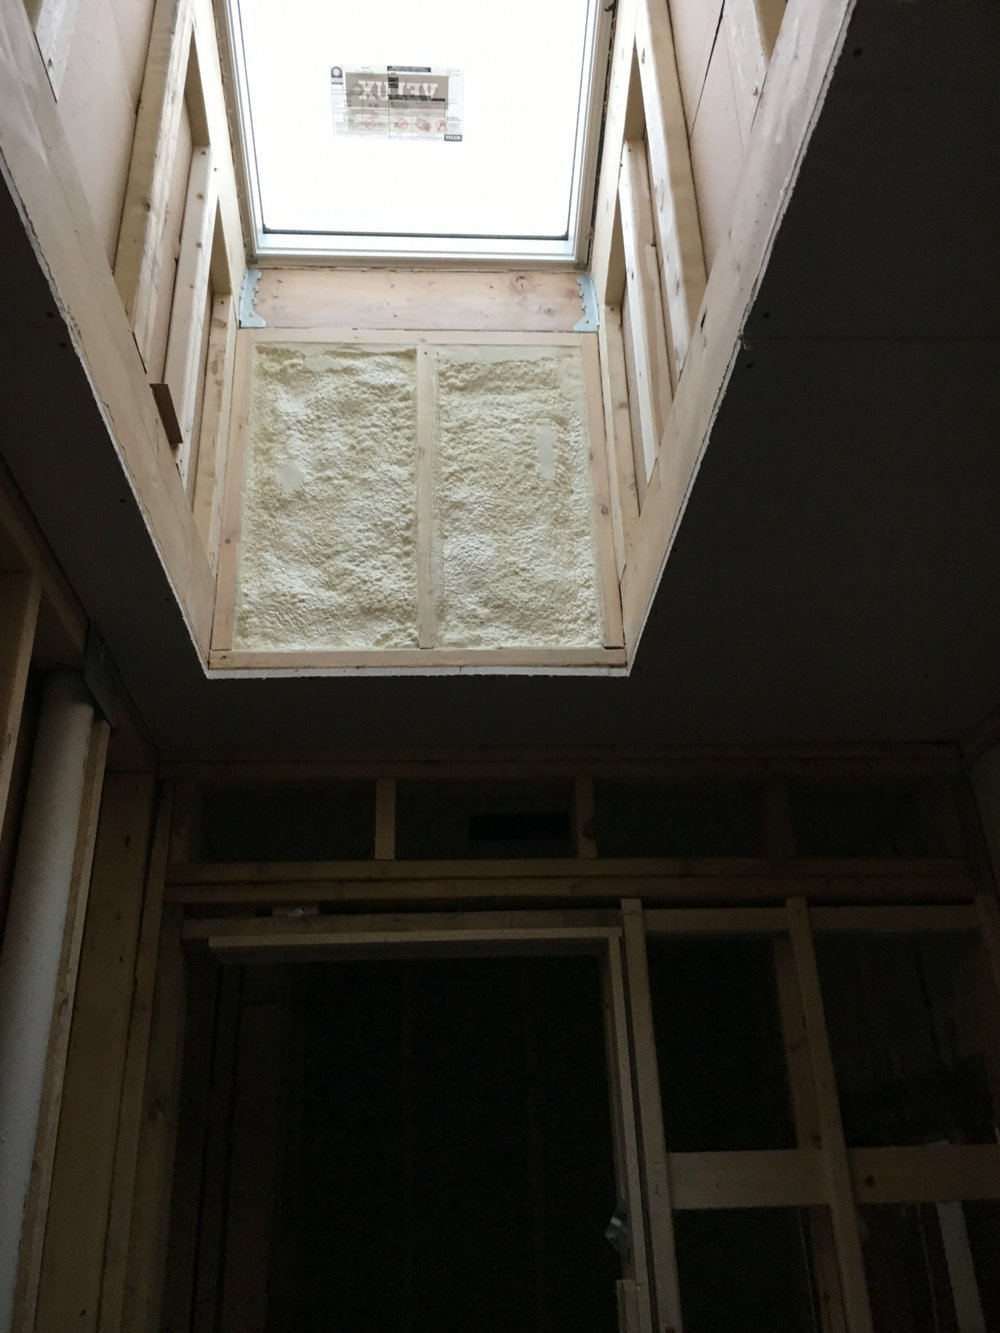 Skylight insulation detail